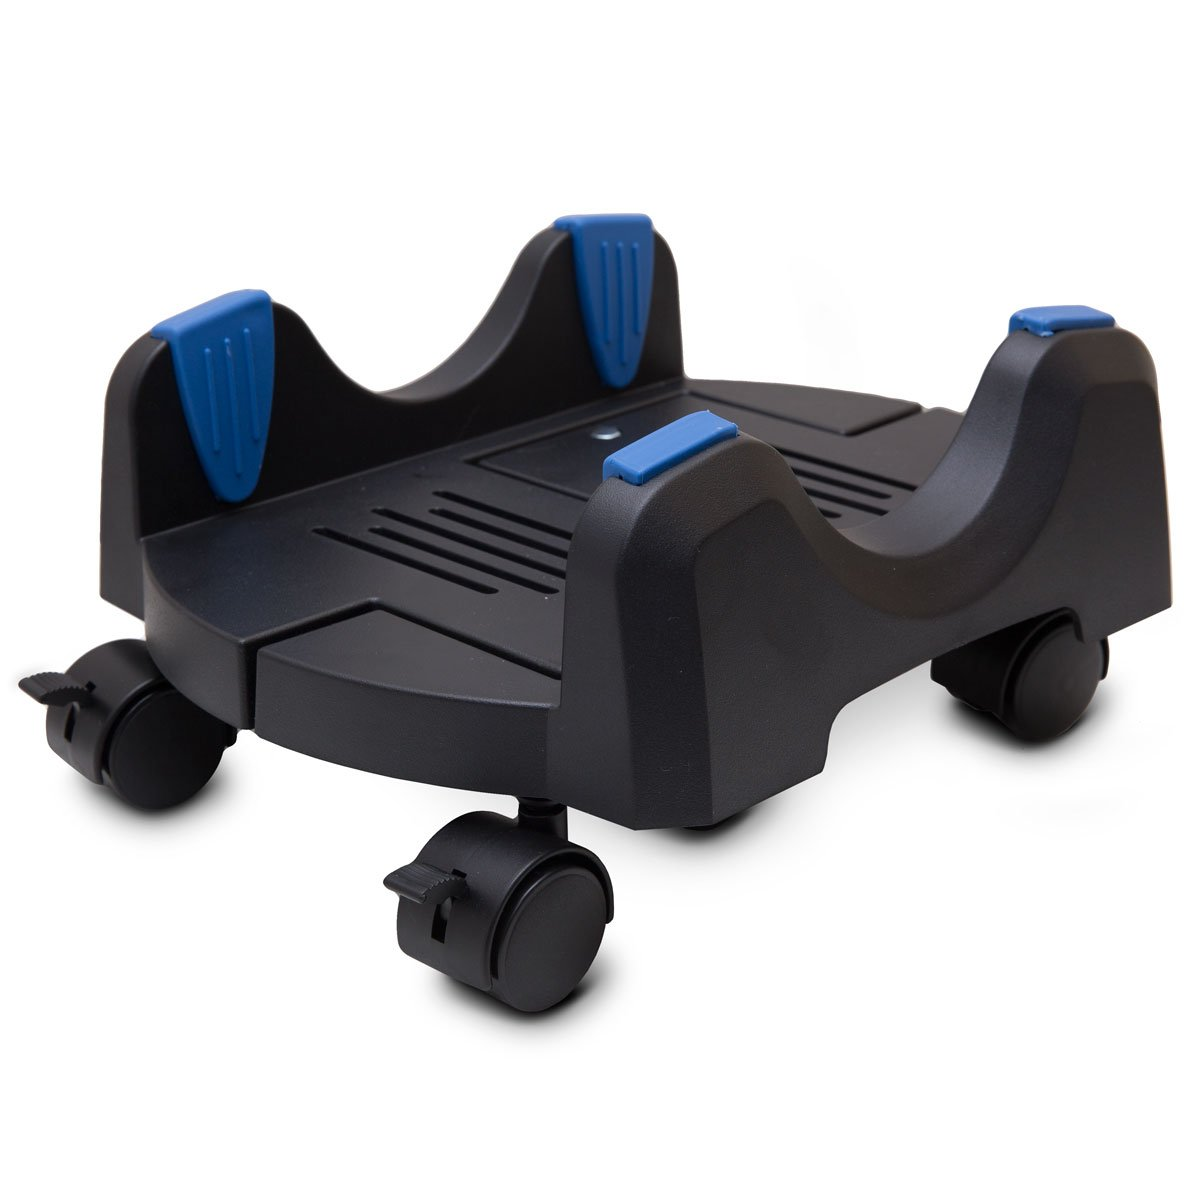 I/O CREST Plastic Computer Floor Stand for ATX Case with Adjustable Width from 6.9'' to 12'' with Locking Caster Wheels